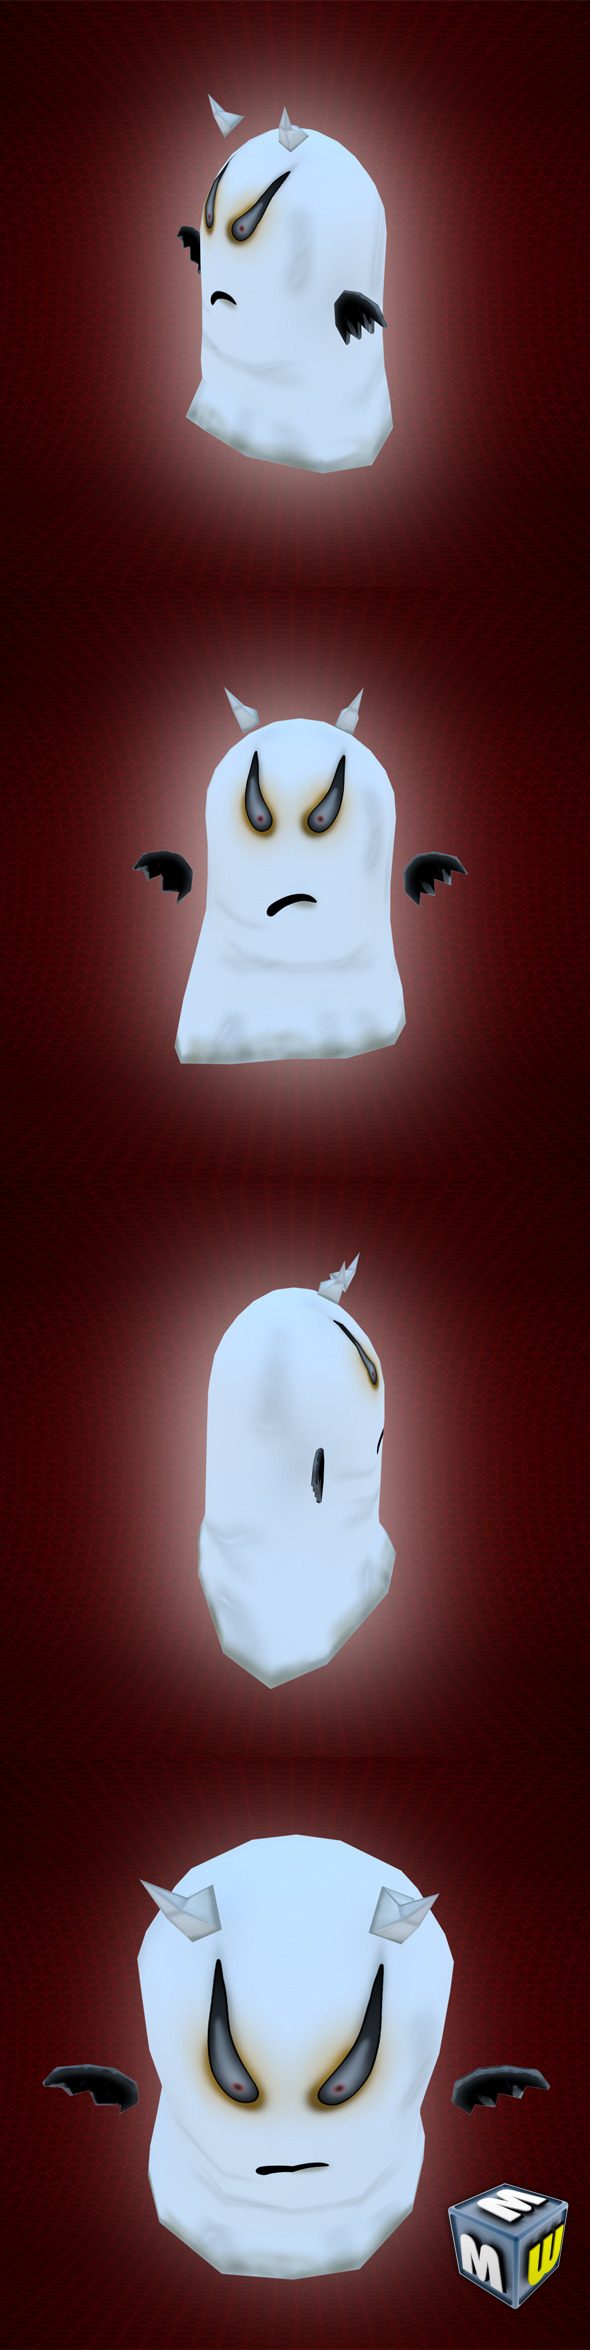 Ghost_Low Poly Character MAX 2011 - 3DOcean Item for Sale